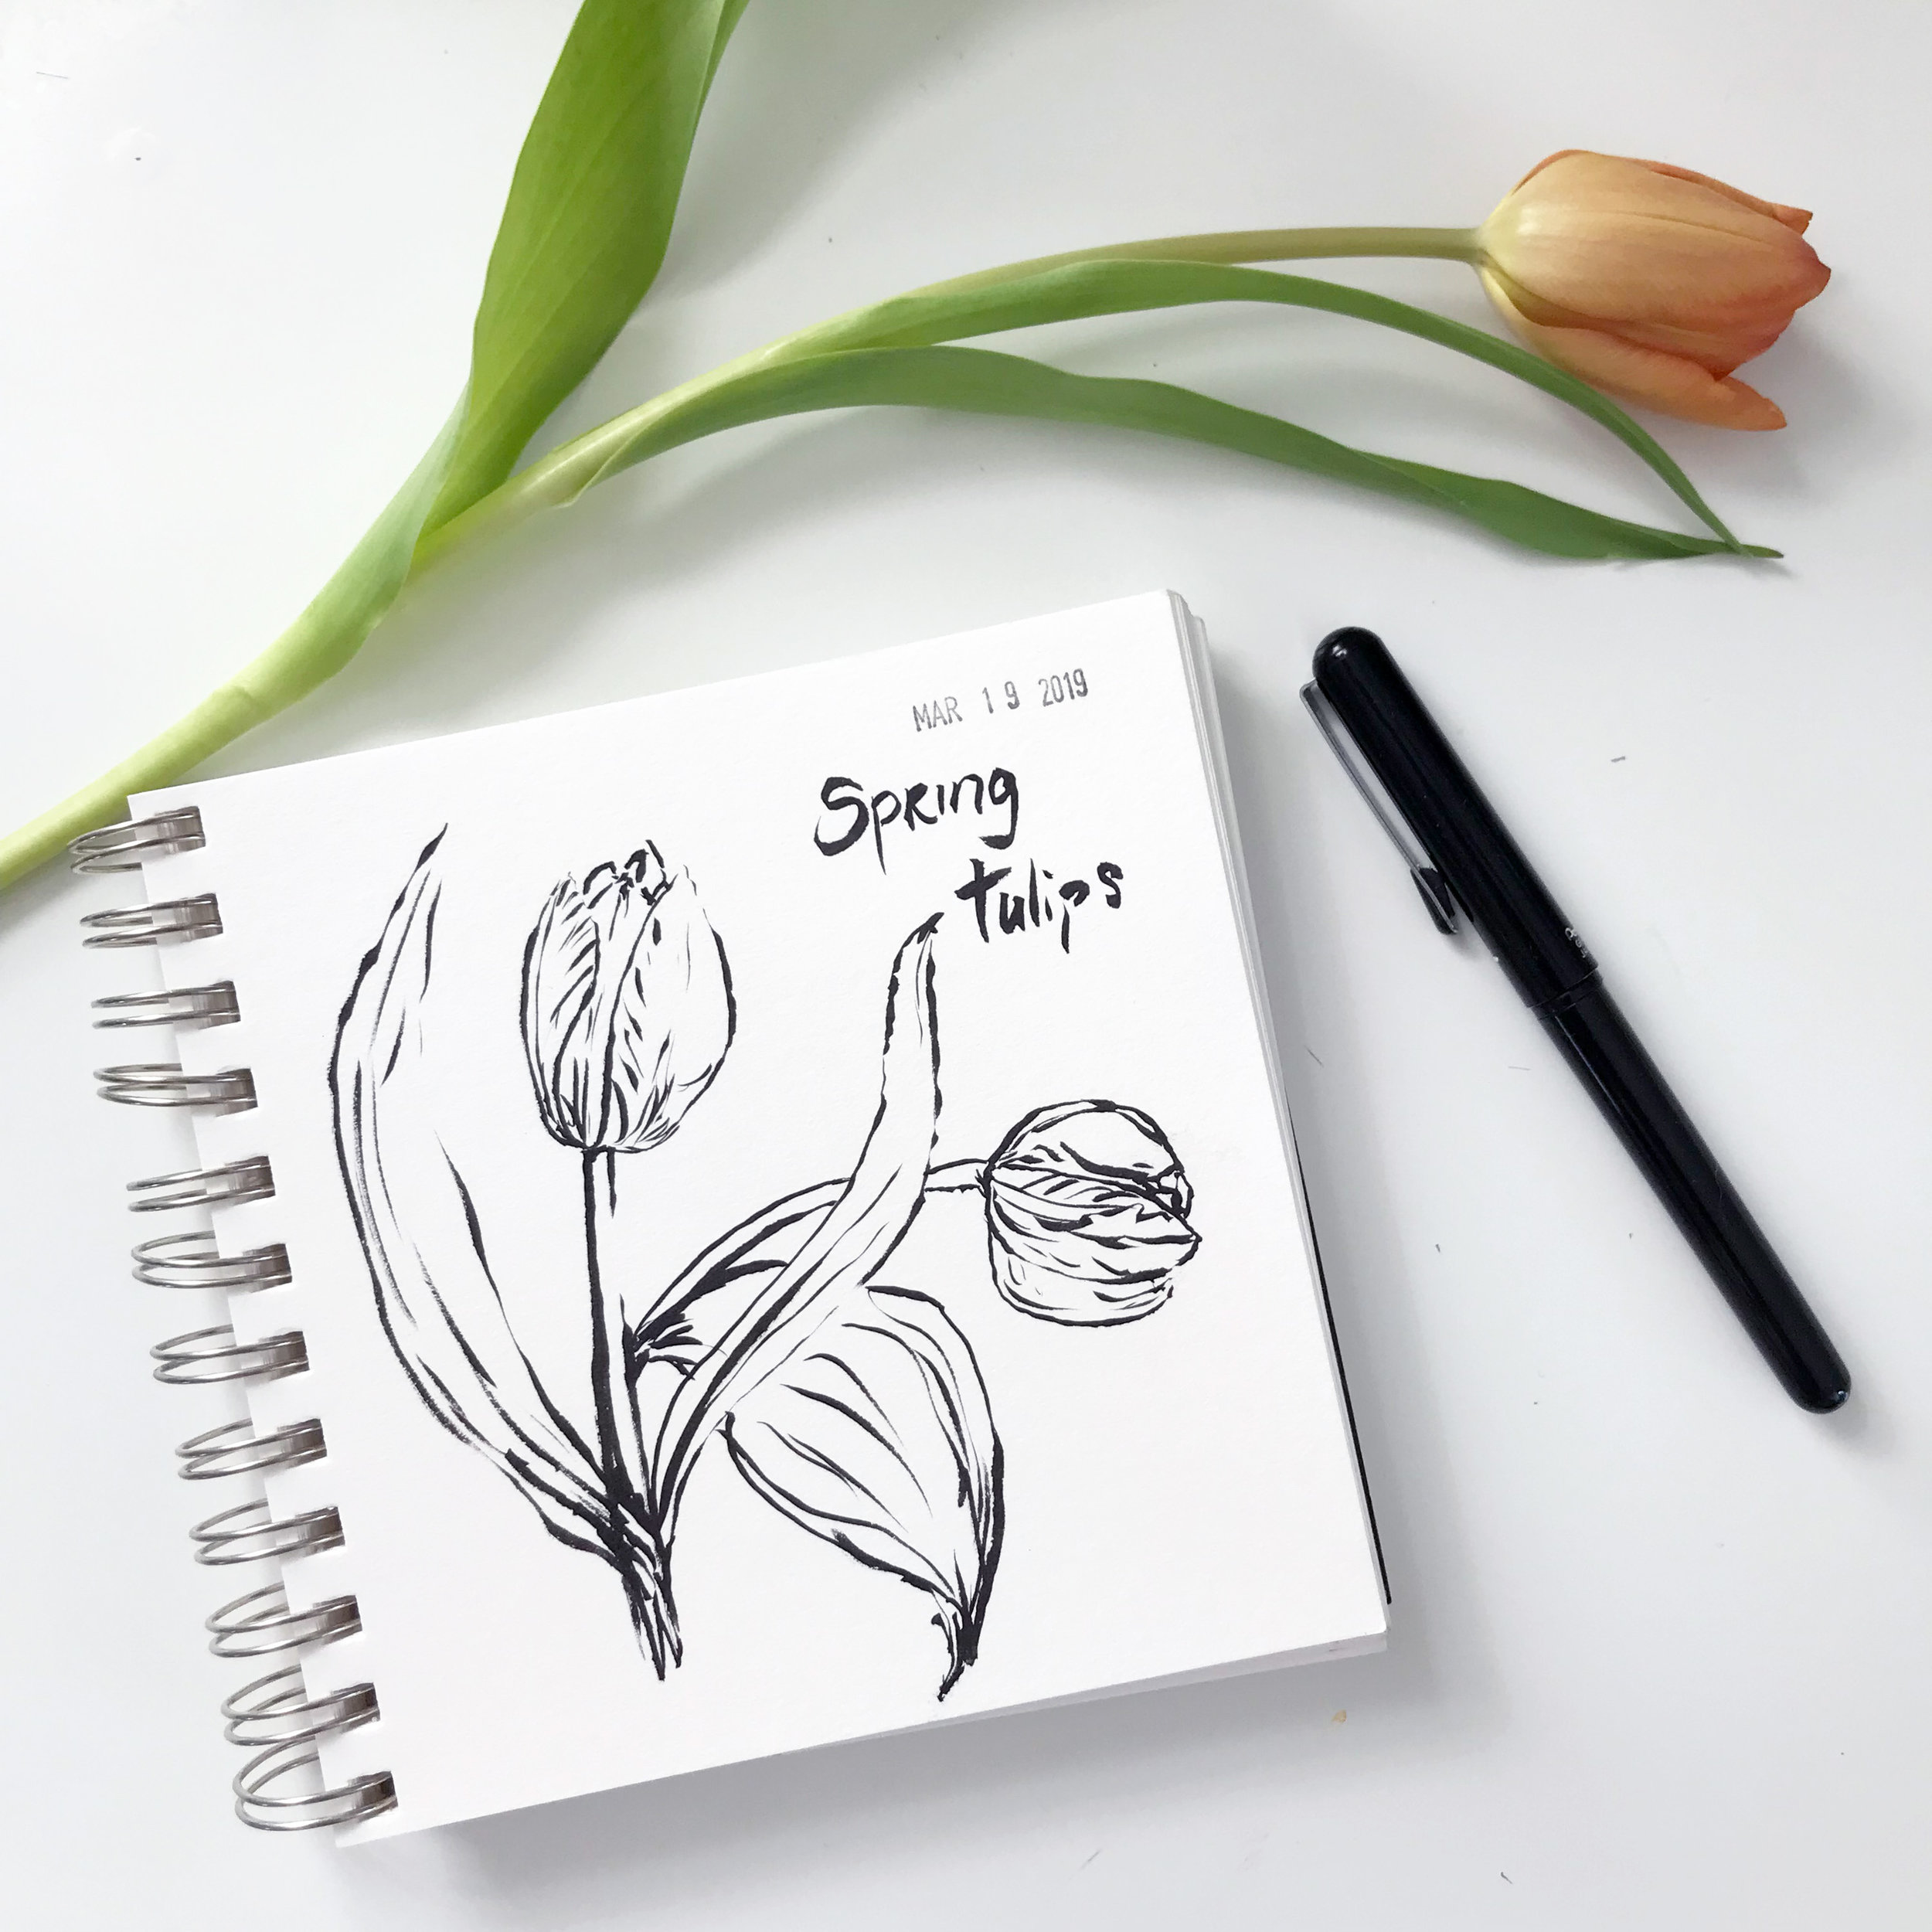 Tulips Sketched with the Pentel Brush Pen in My Sketchbook